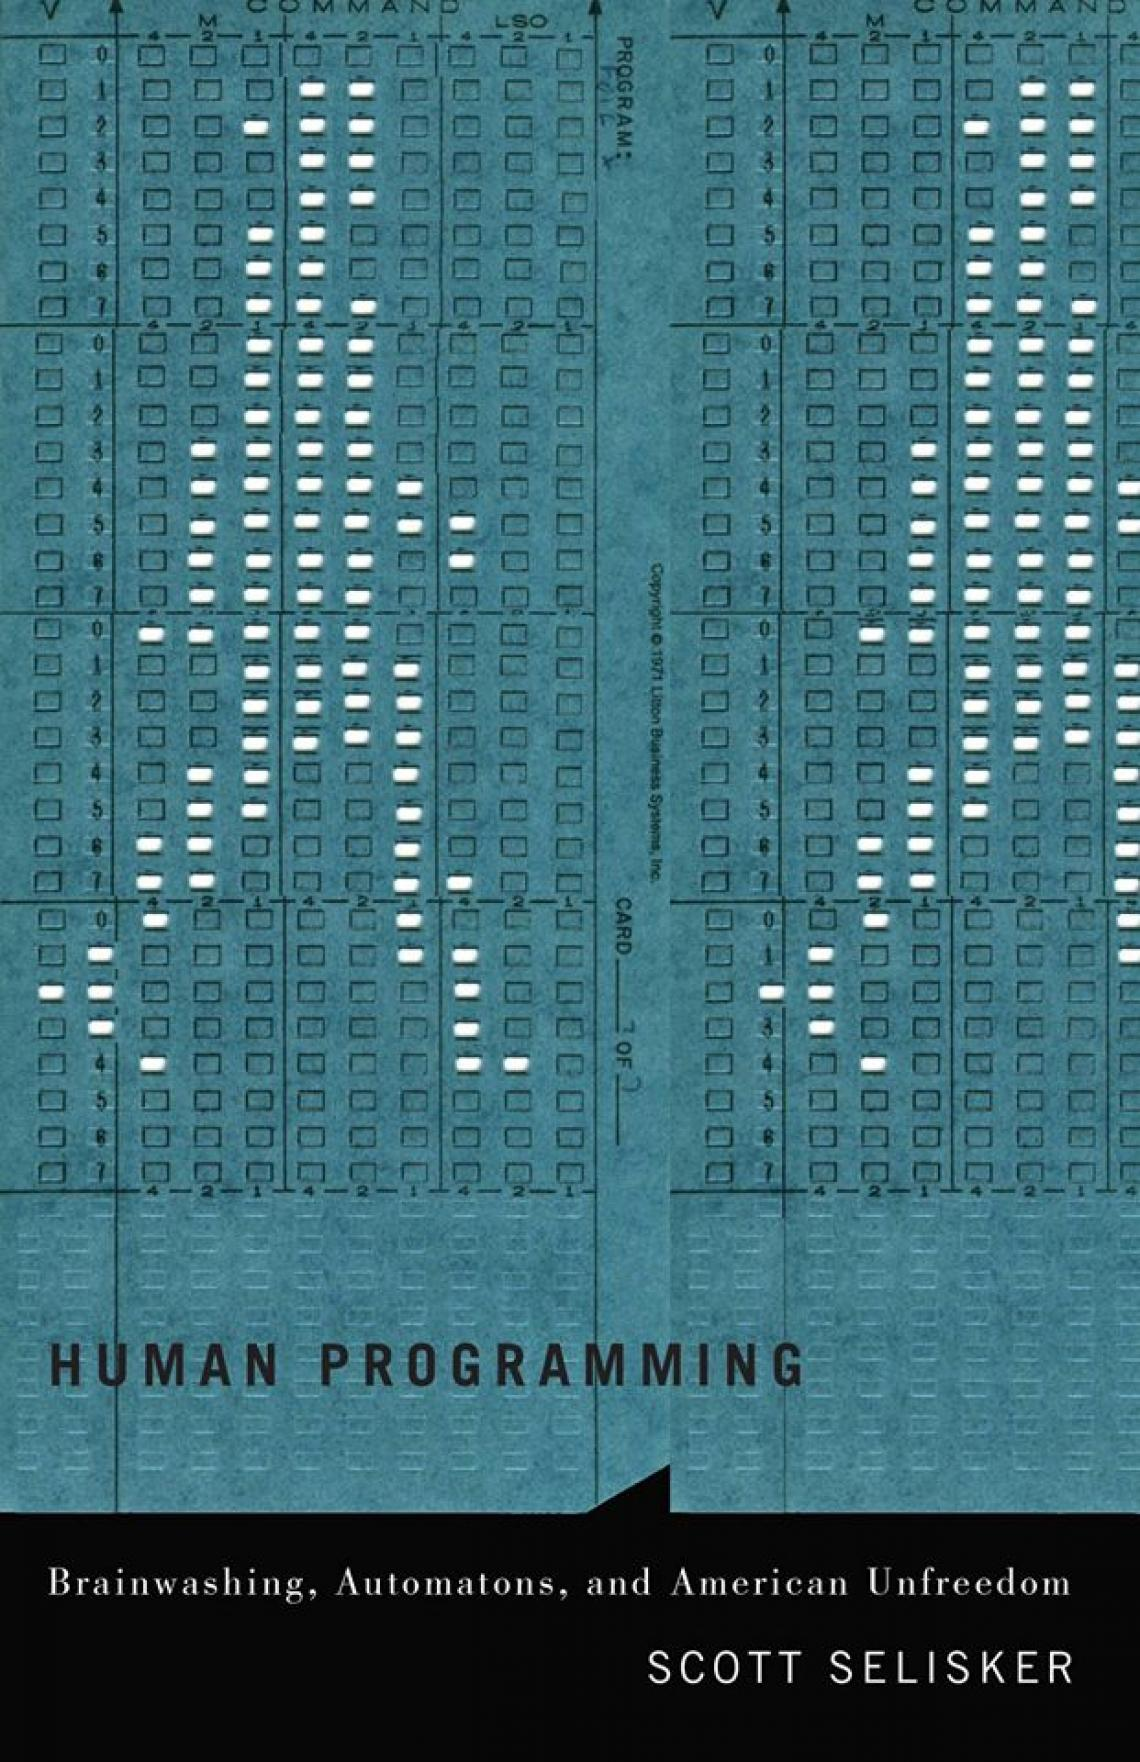 """Human Programming: Brainwashing, Automatons and American Unfreedom"" by UA assistant professor Scott Selisker was published Aug. 1."